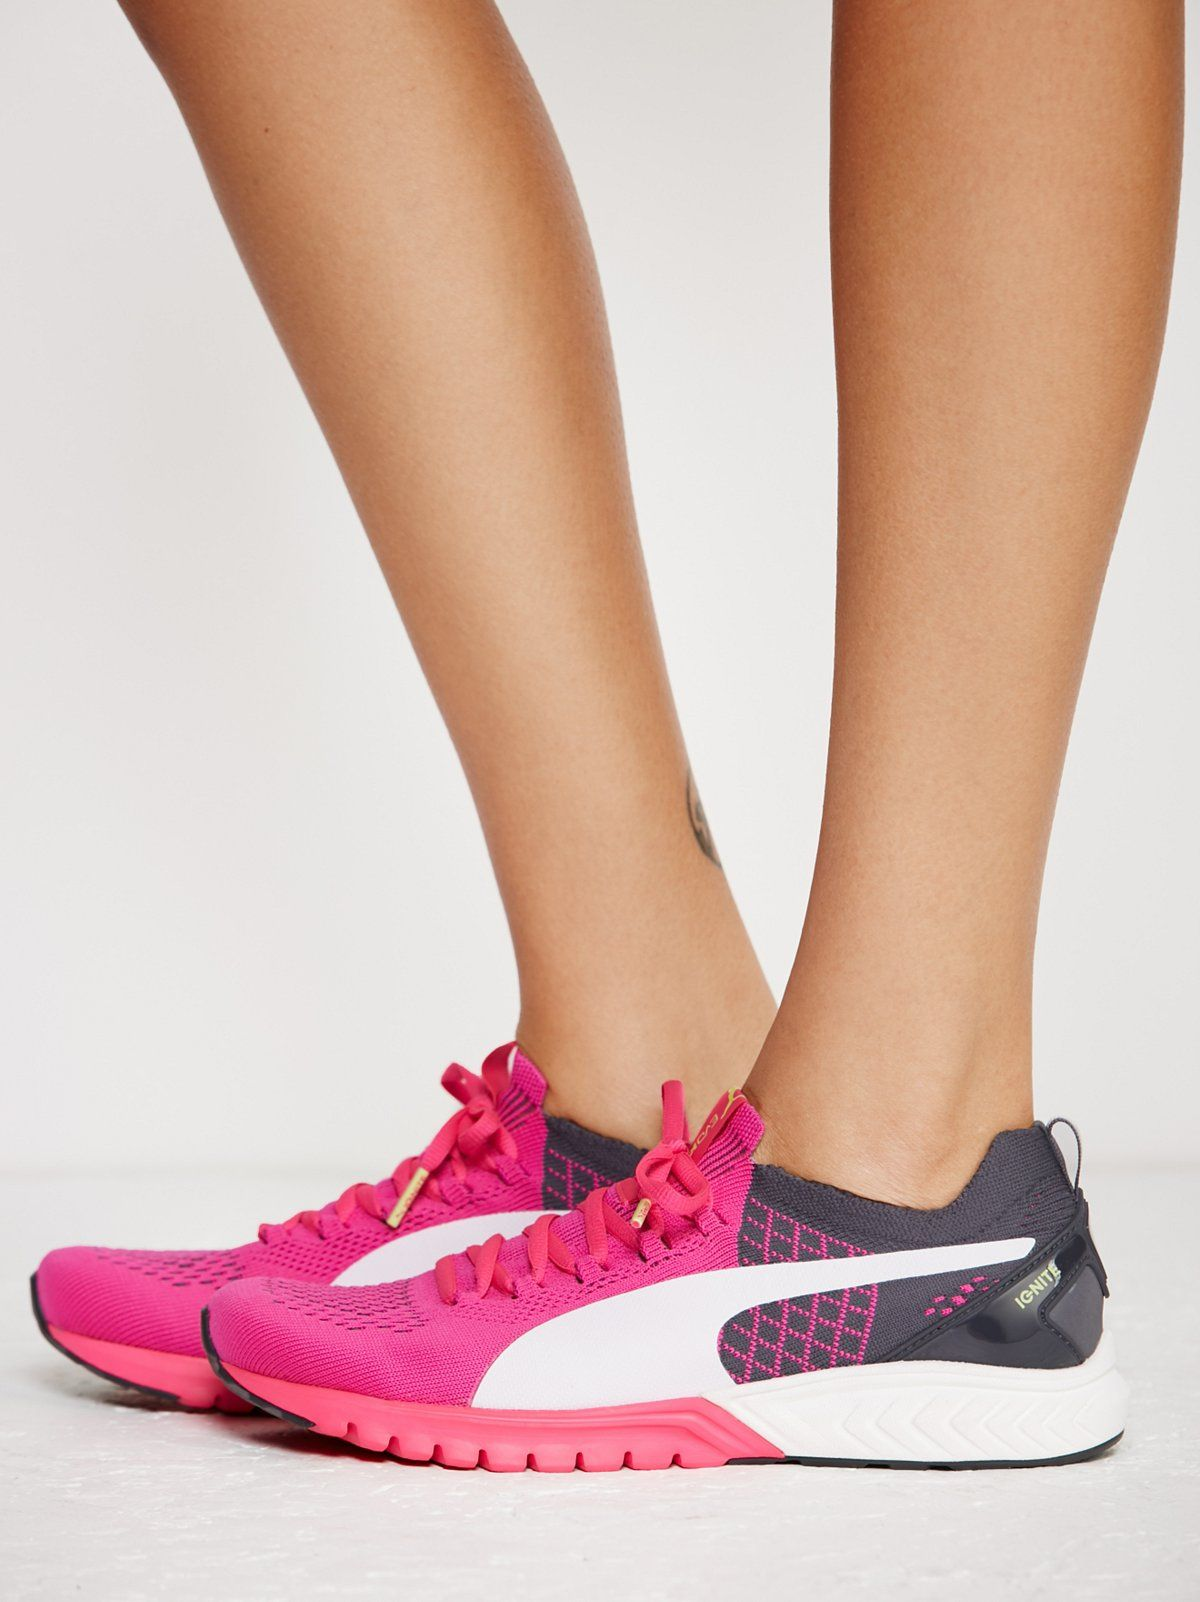 Puma Ignite Dual Evoknit Trainer at Free People Clothing Boutique d65ed6f330f6